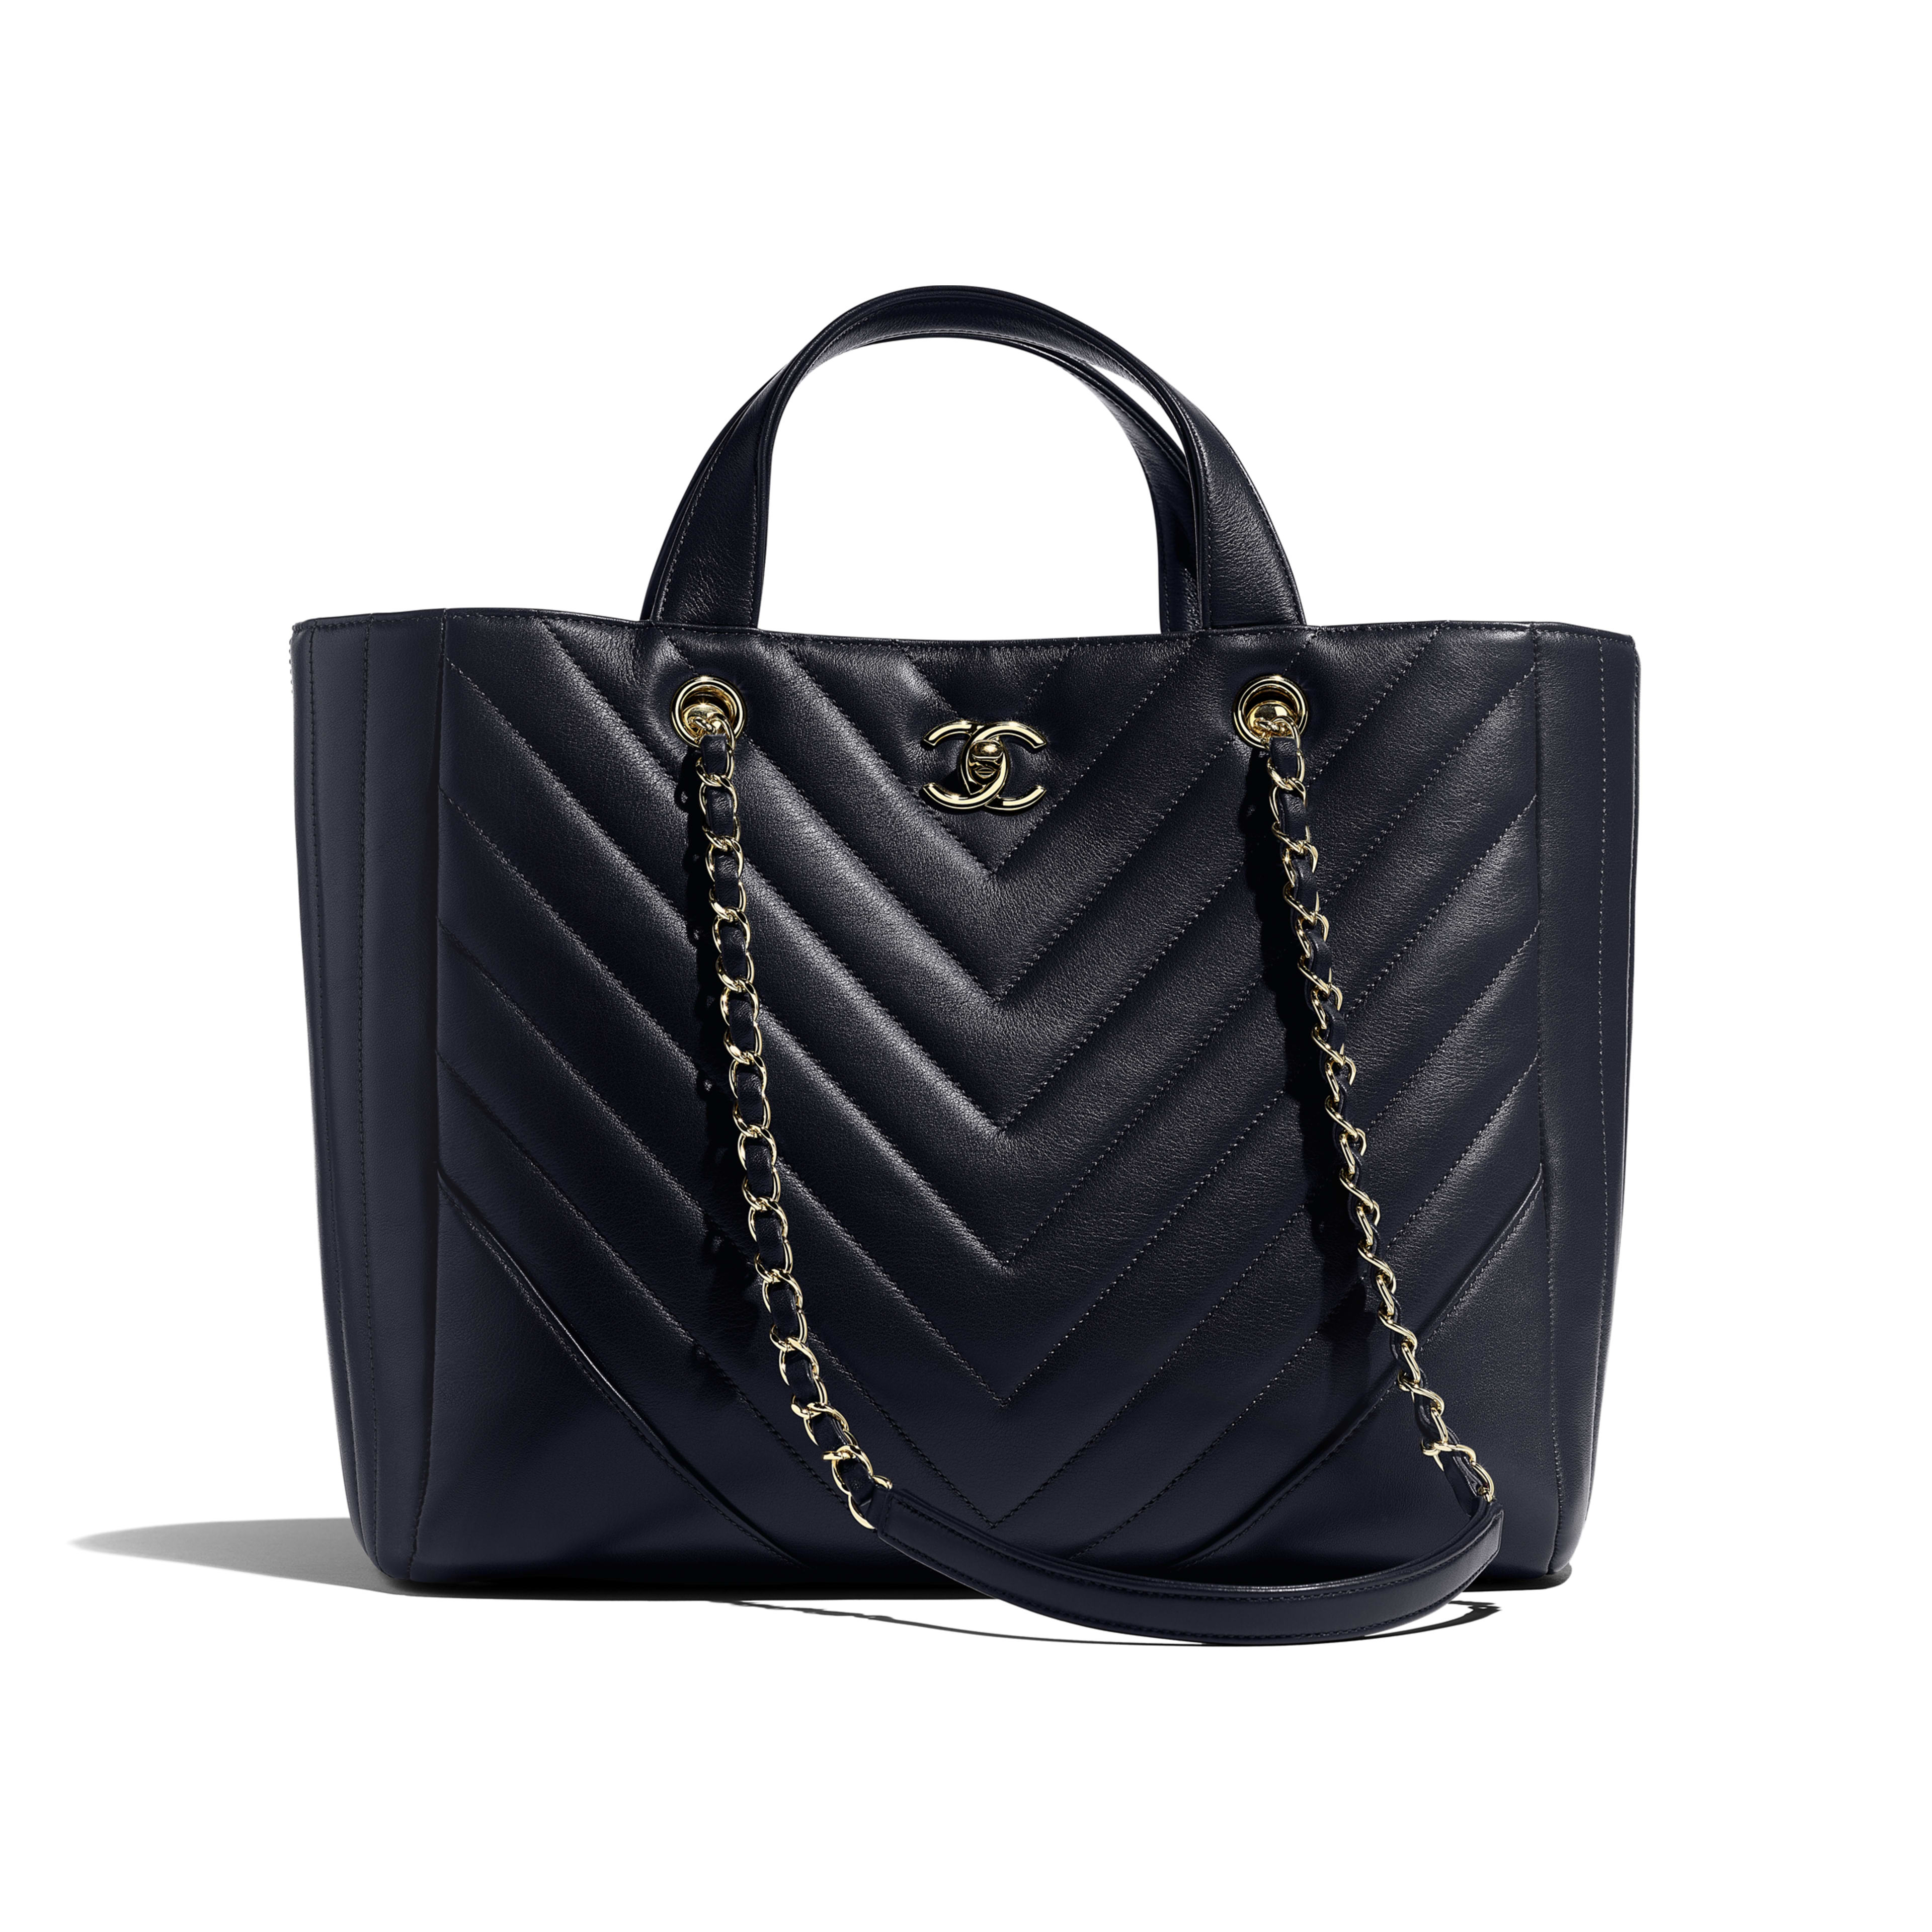 Large Shopping Bag - Navy Blue - Calfskin & Gold-Tone Metal - Default view - see full sized version